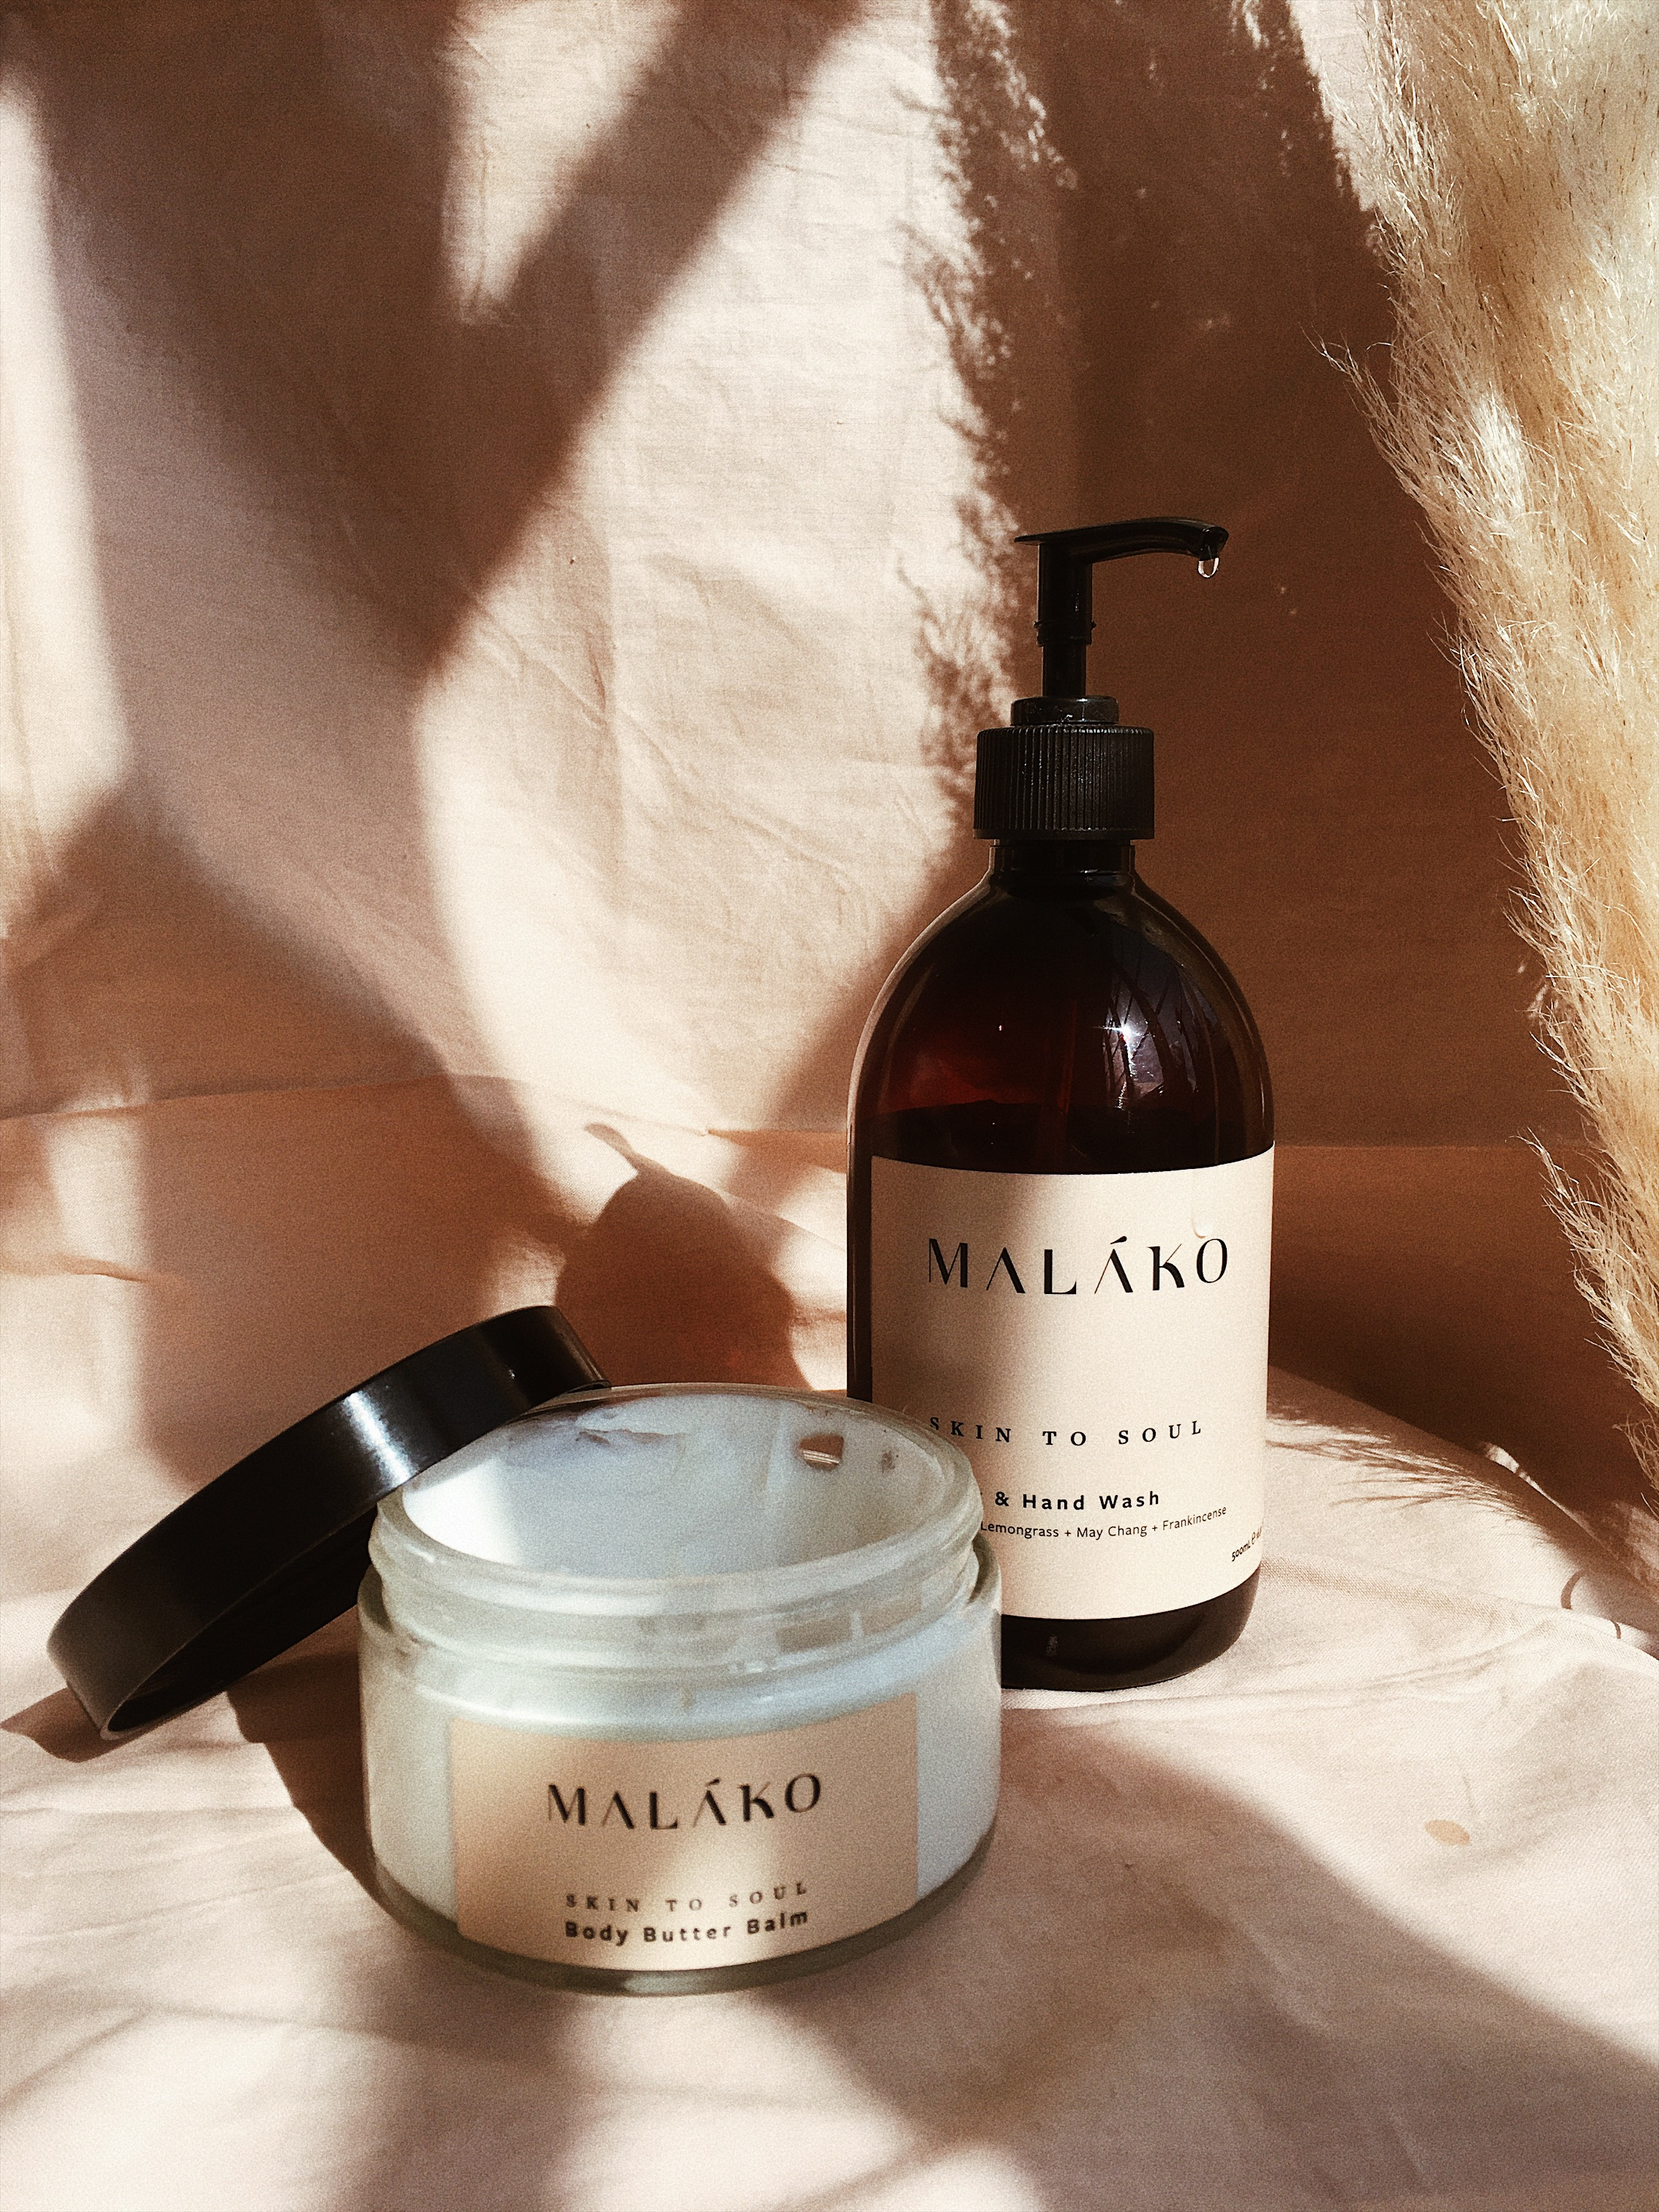 malako-skincare-body-wash-butter-balm-layout-loolaa-designs.JPG